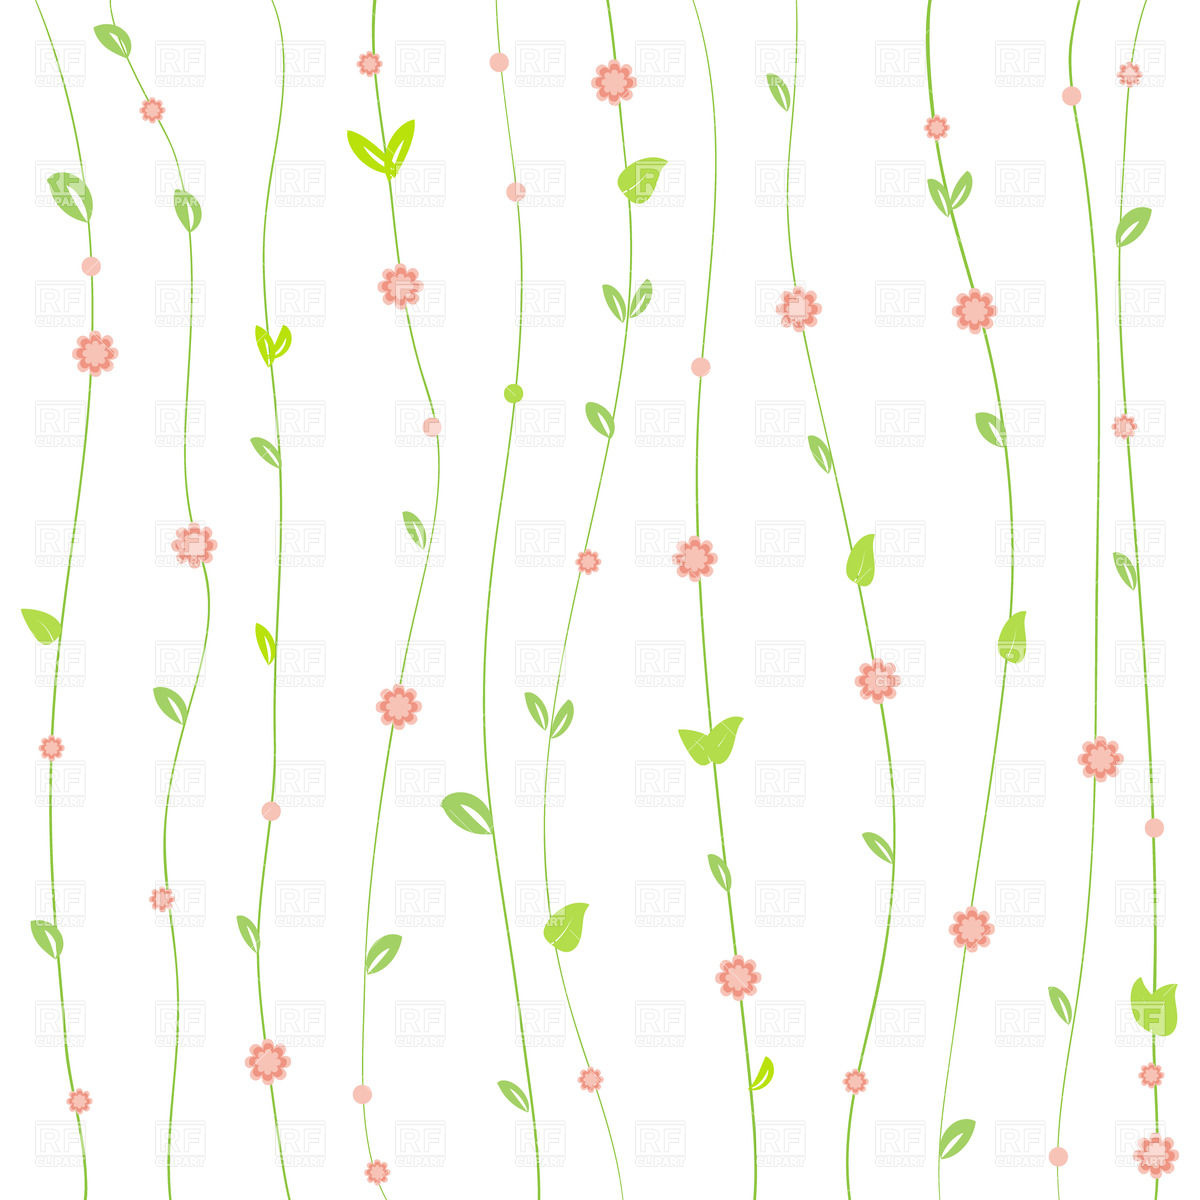 Floral Background Clipart.